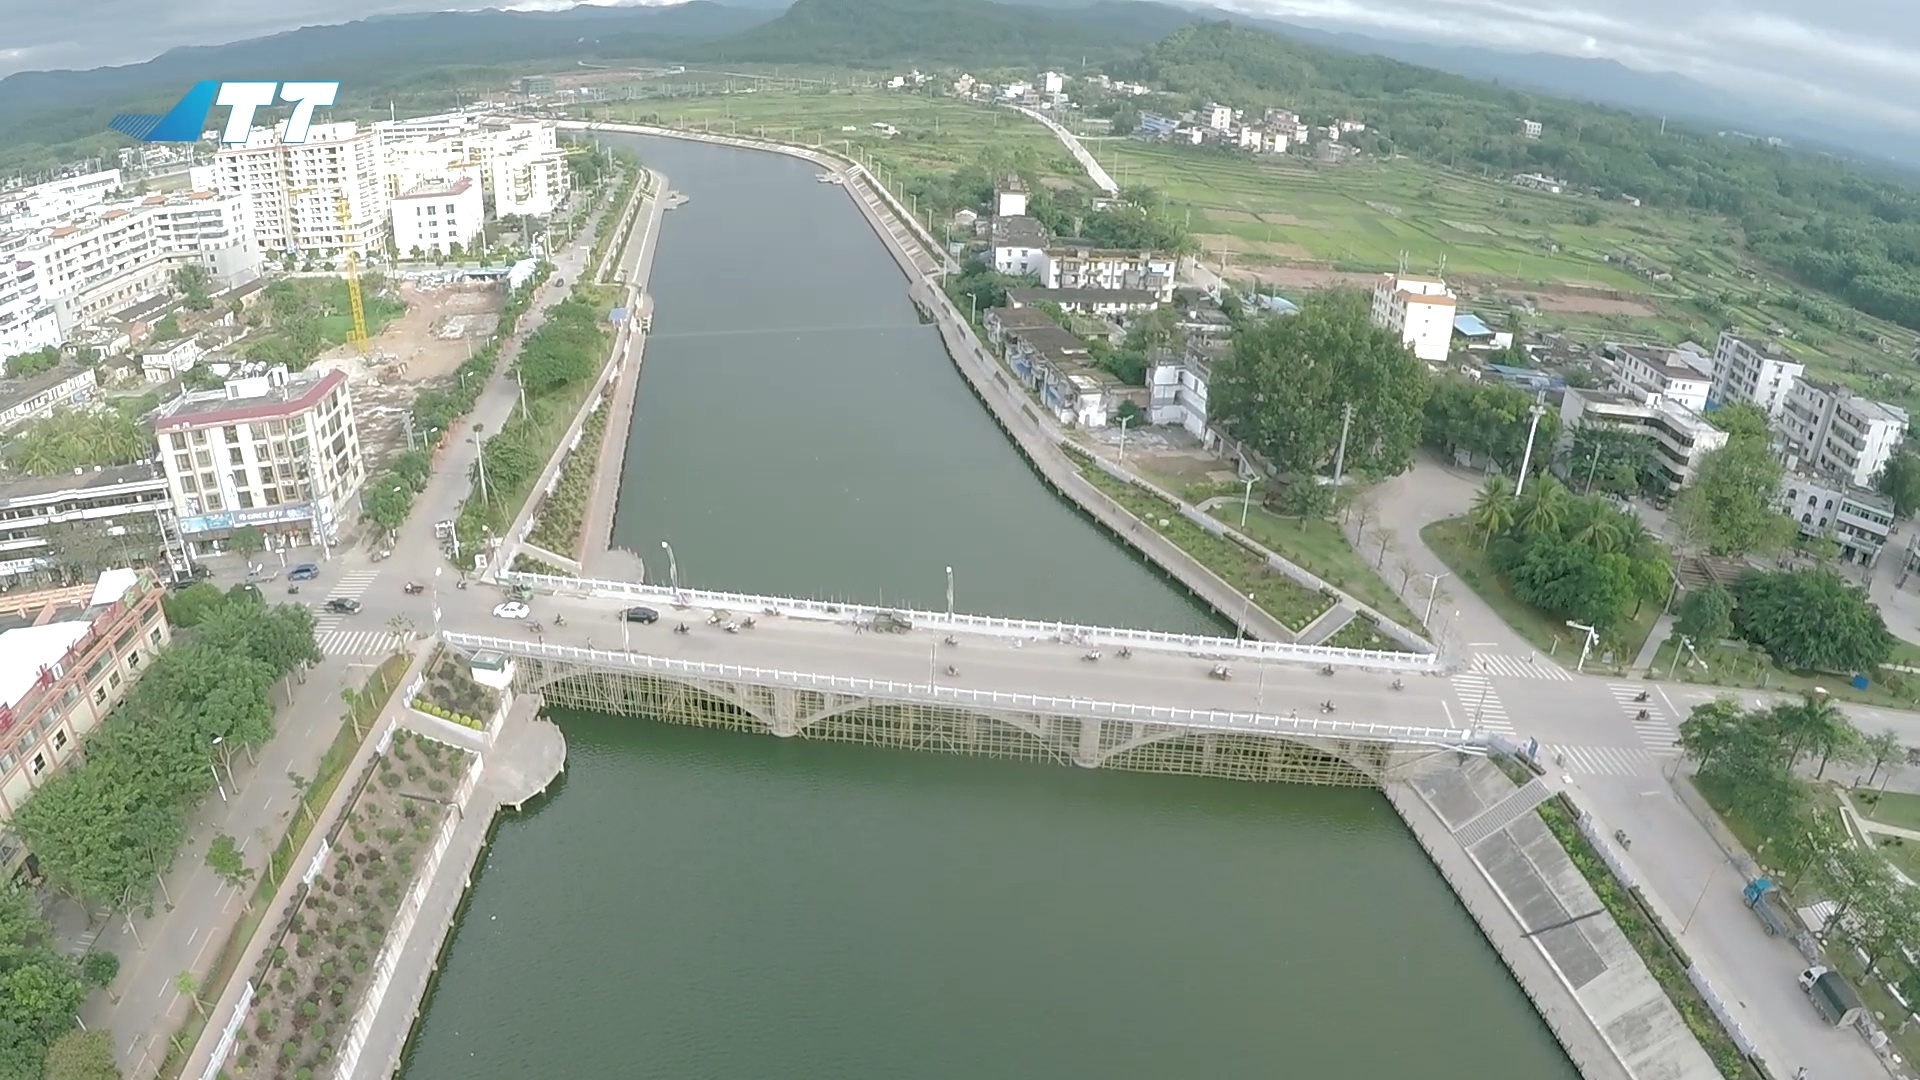 JTT UAV-Aerial photograph of unmanned aerial vehicle in Hainan, China